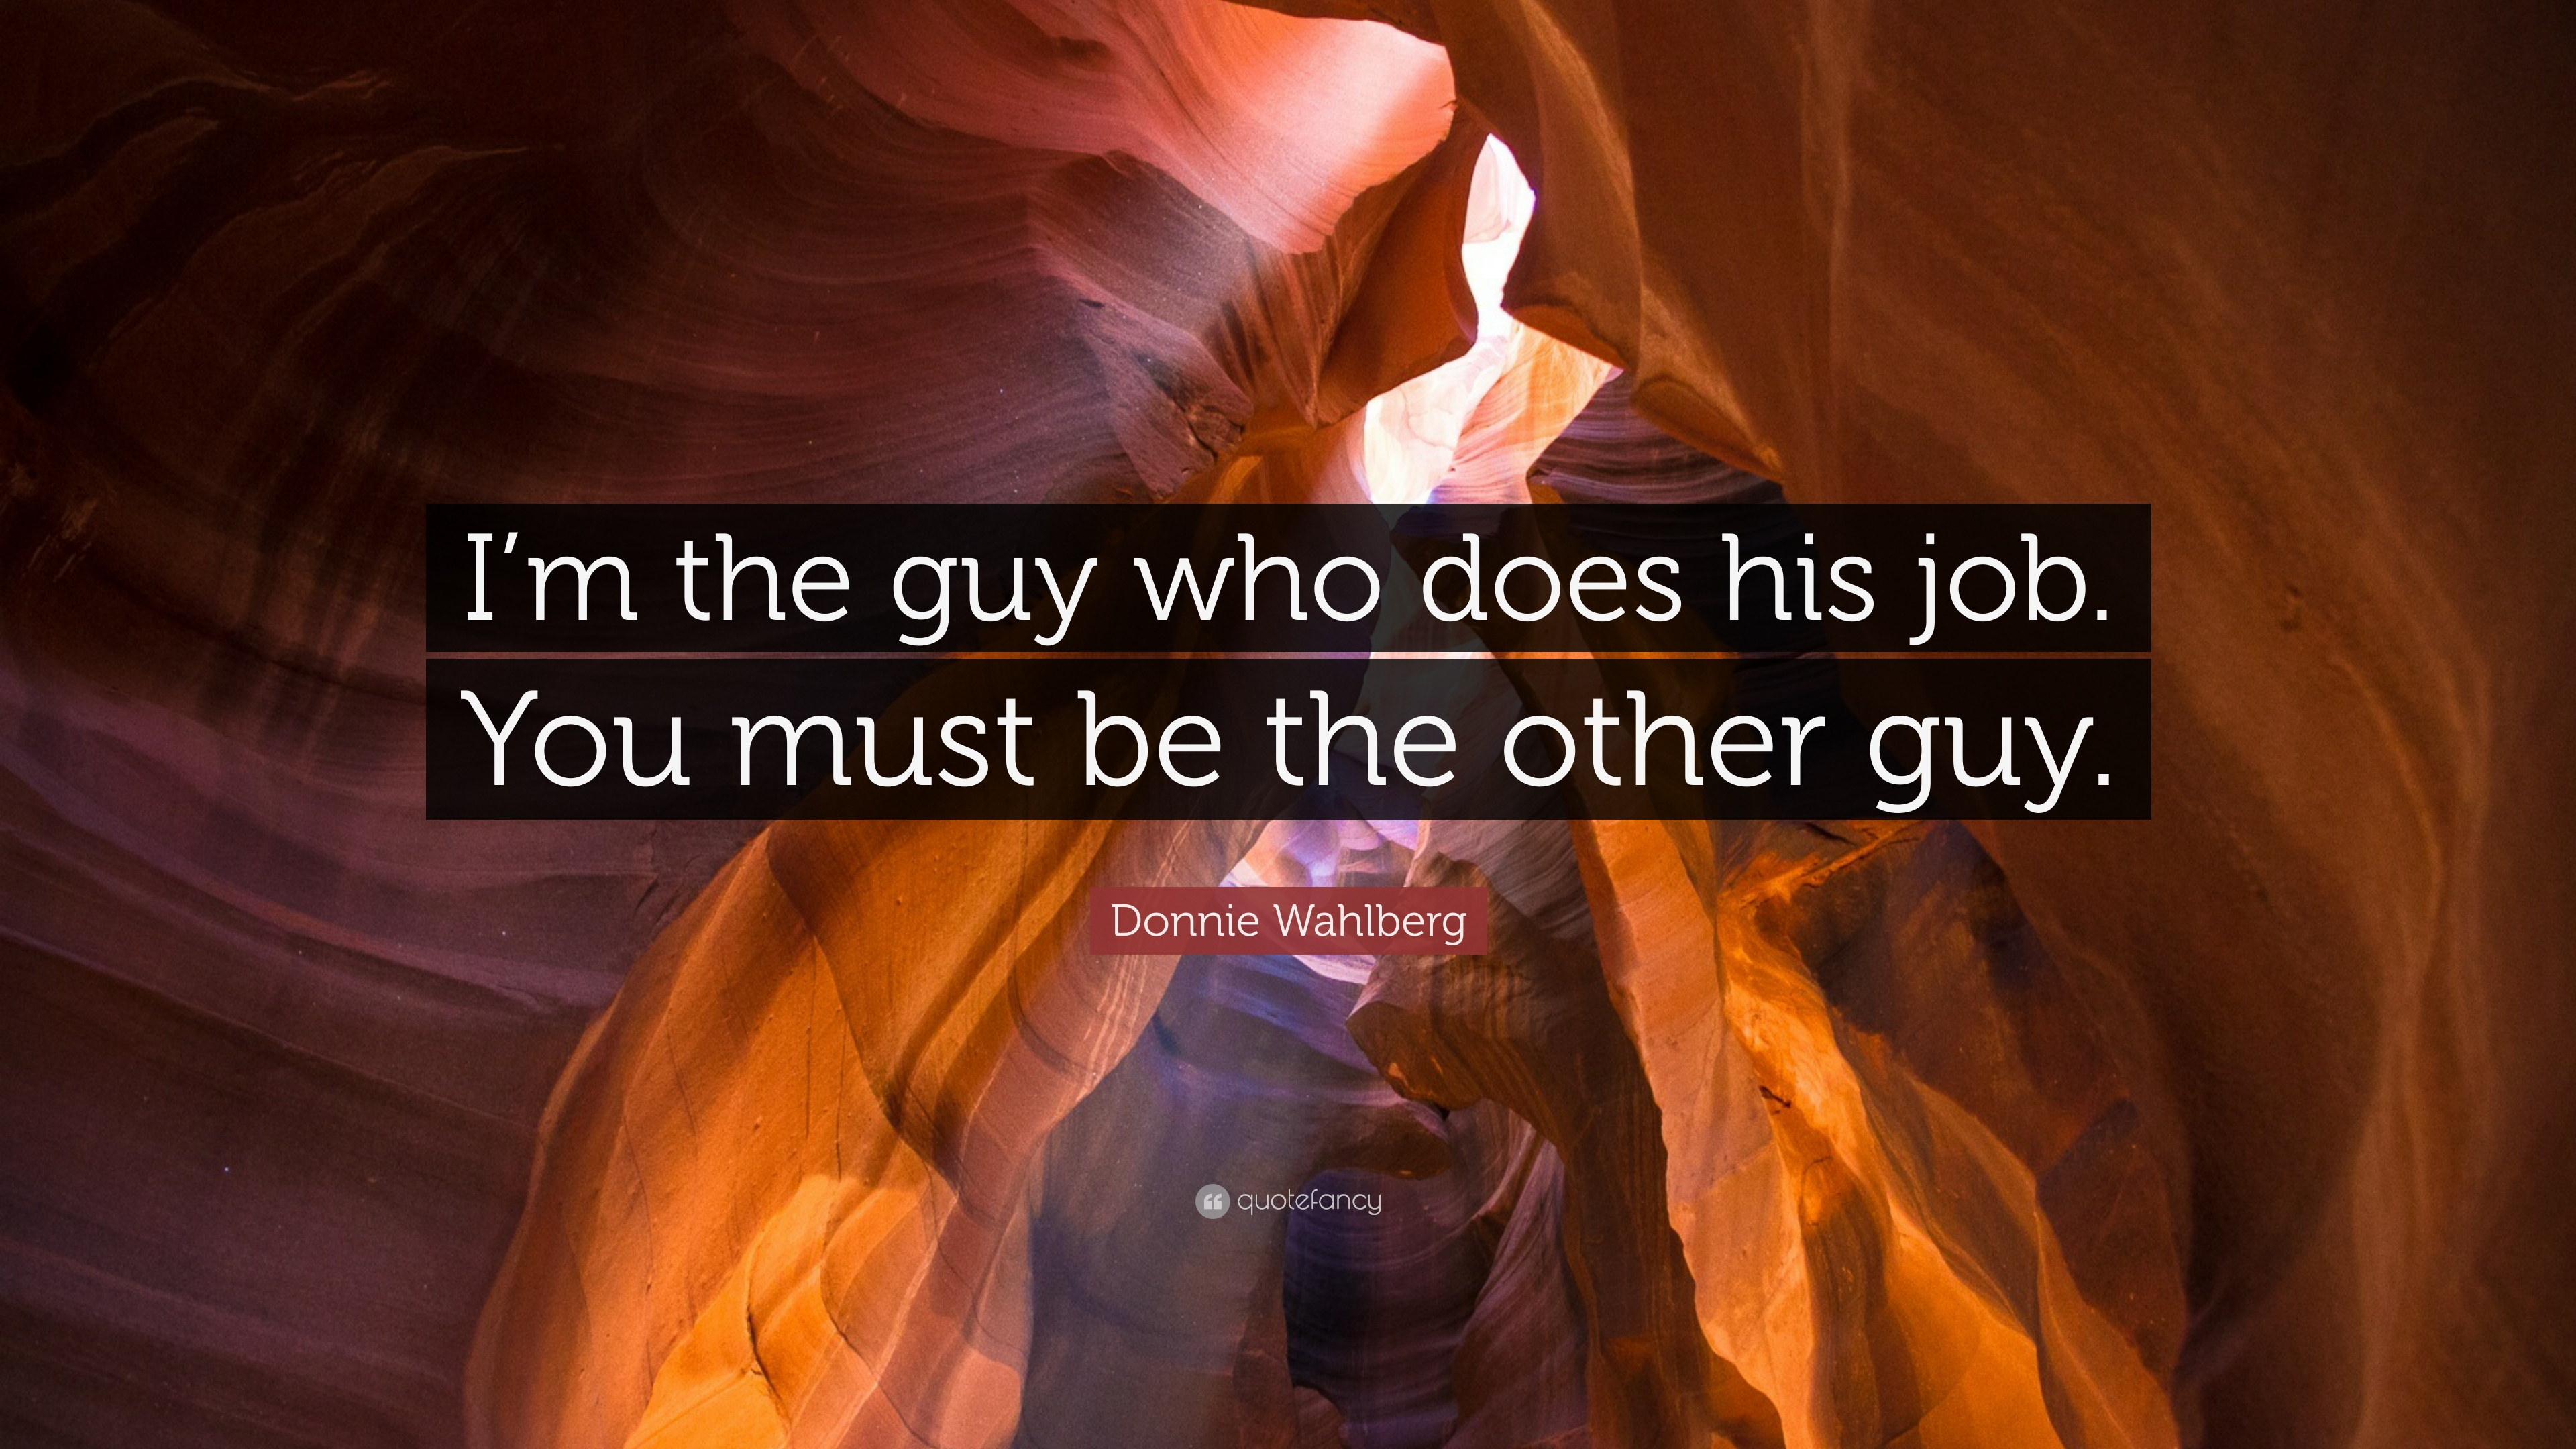 Donnie Wahlberg Quote: Im the guy who does his job. You